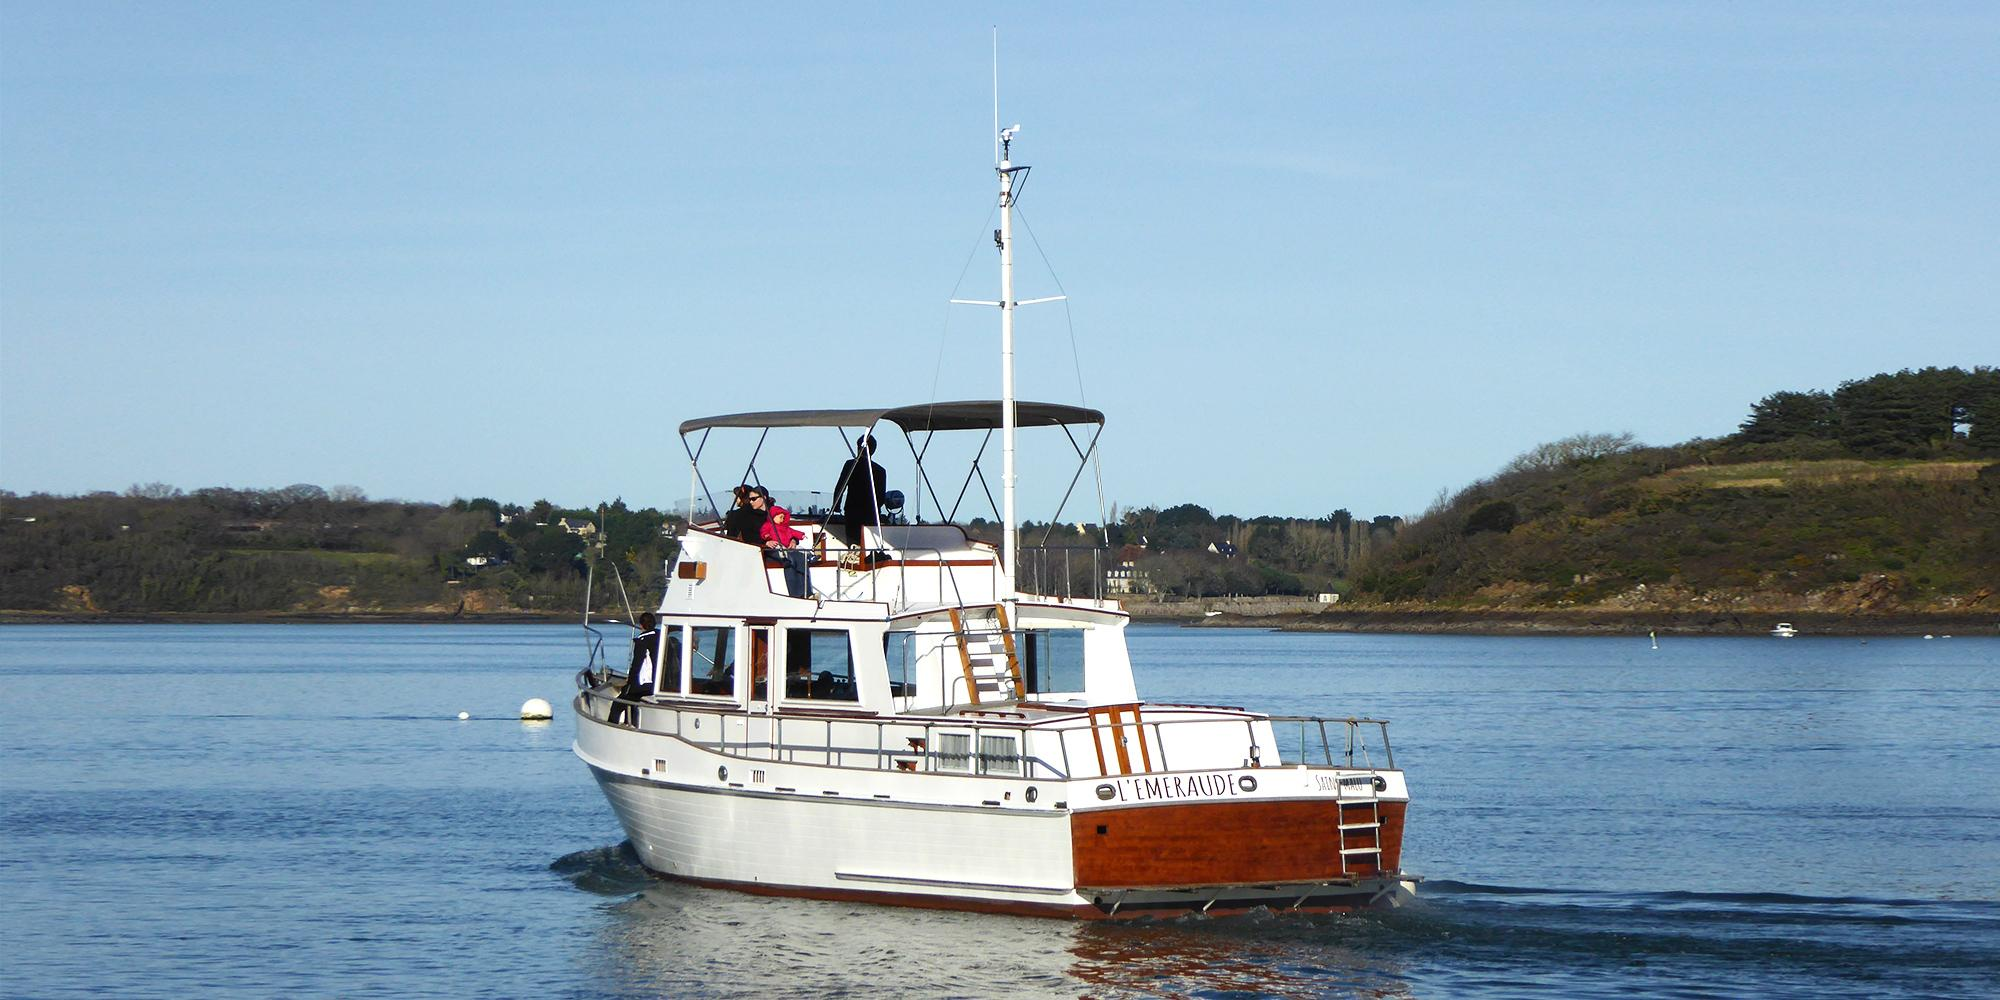 Dinard fishing tour with Croisieres Emeraude